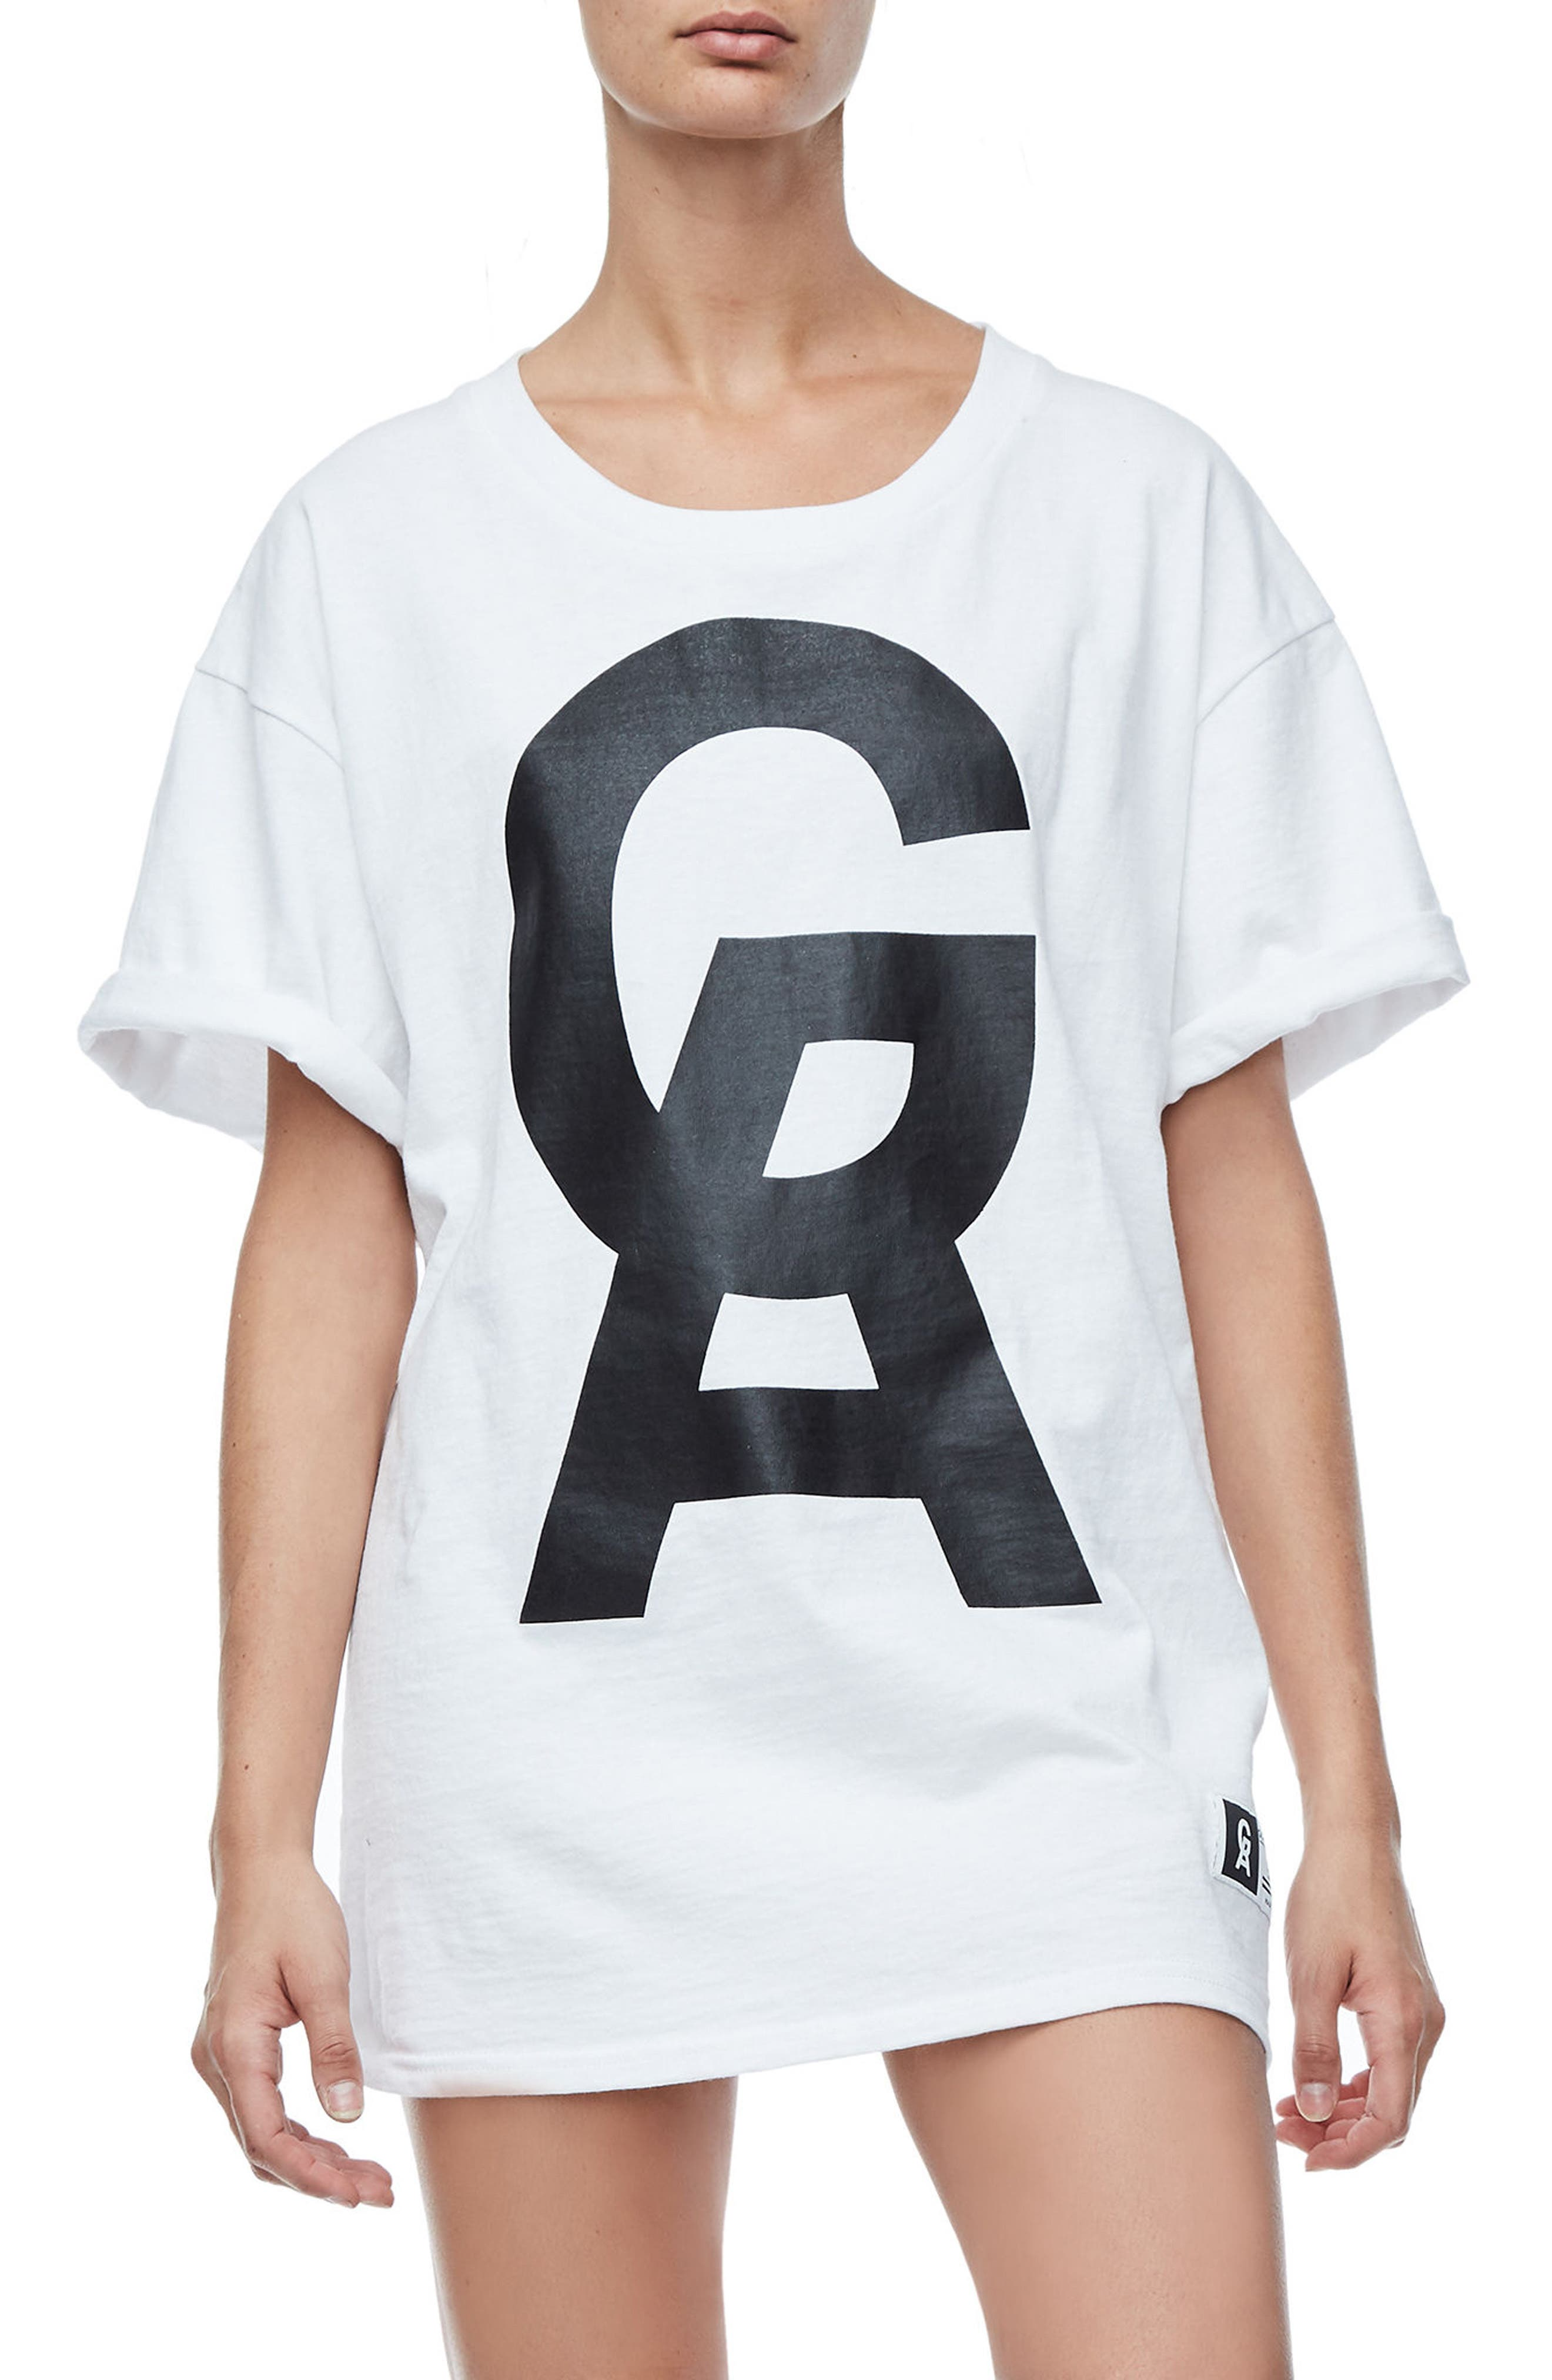 Goodies Short Sleeve Oversize Tee,                         Main,                         color, White001